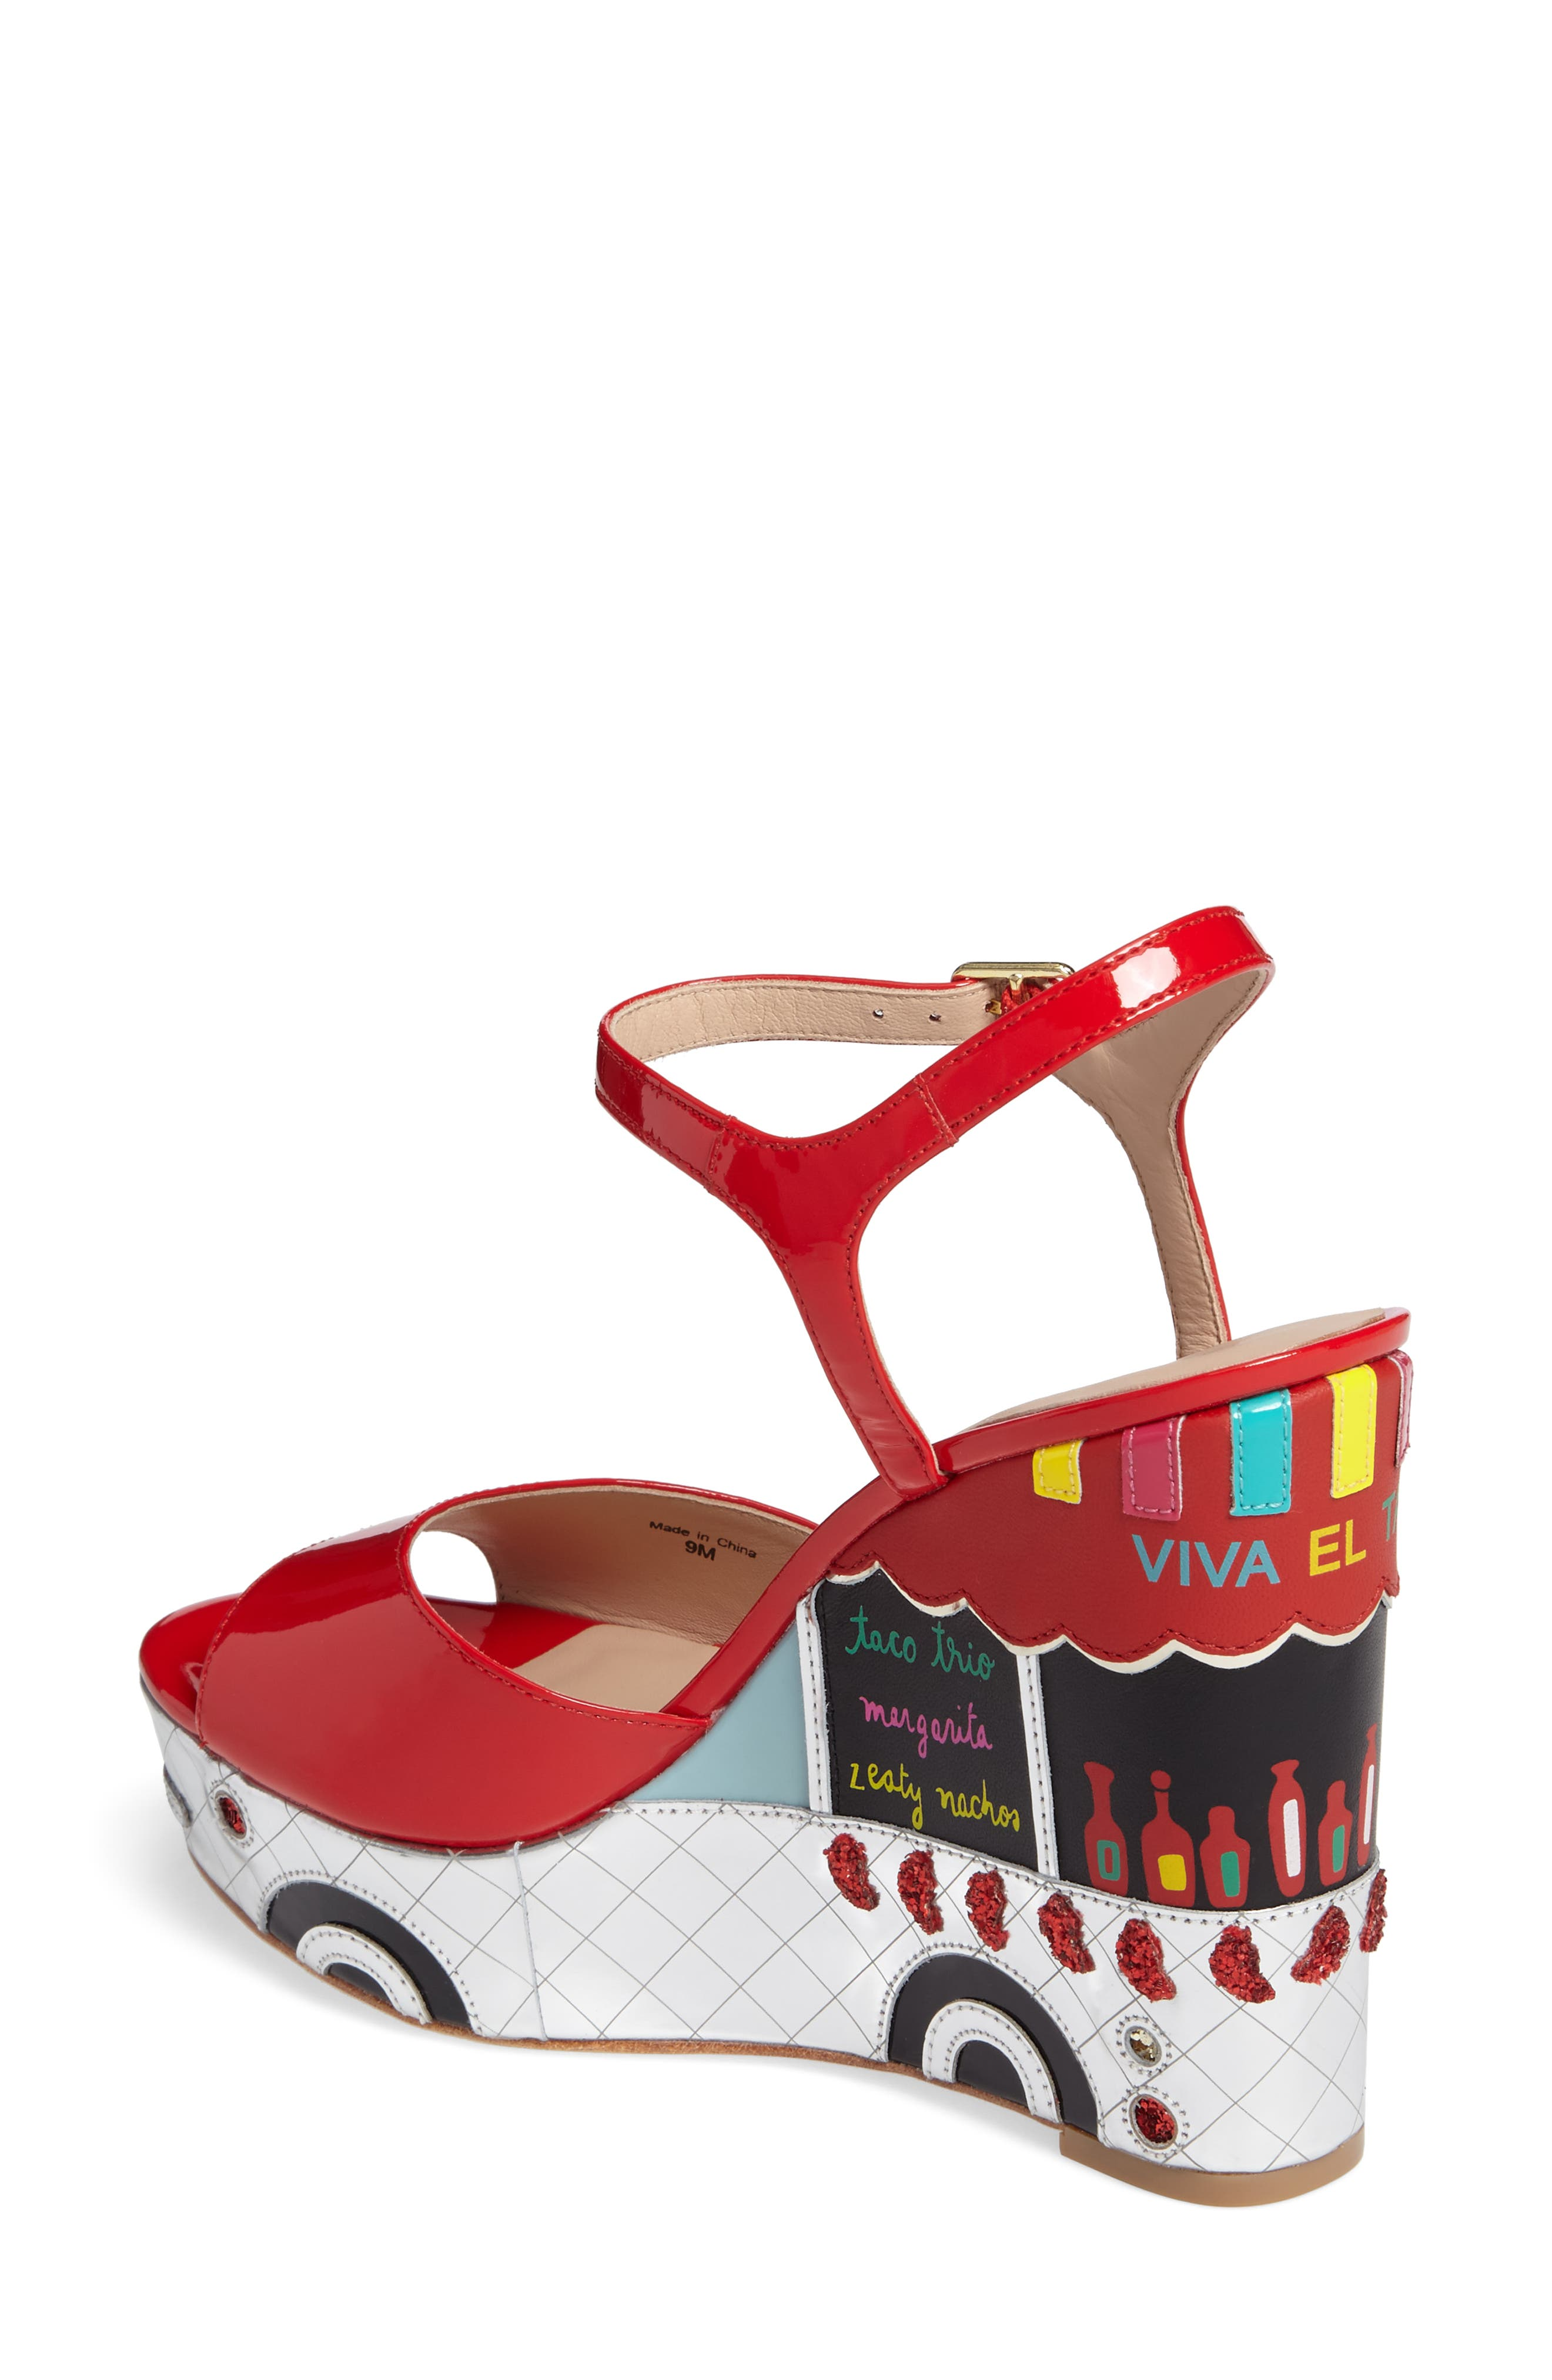 dora wedge sandal,                             Alternate thumbnail 2, color,                             Maraschino Red Patent